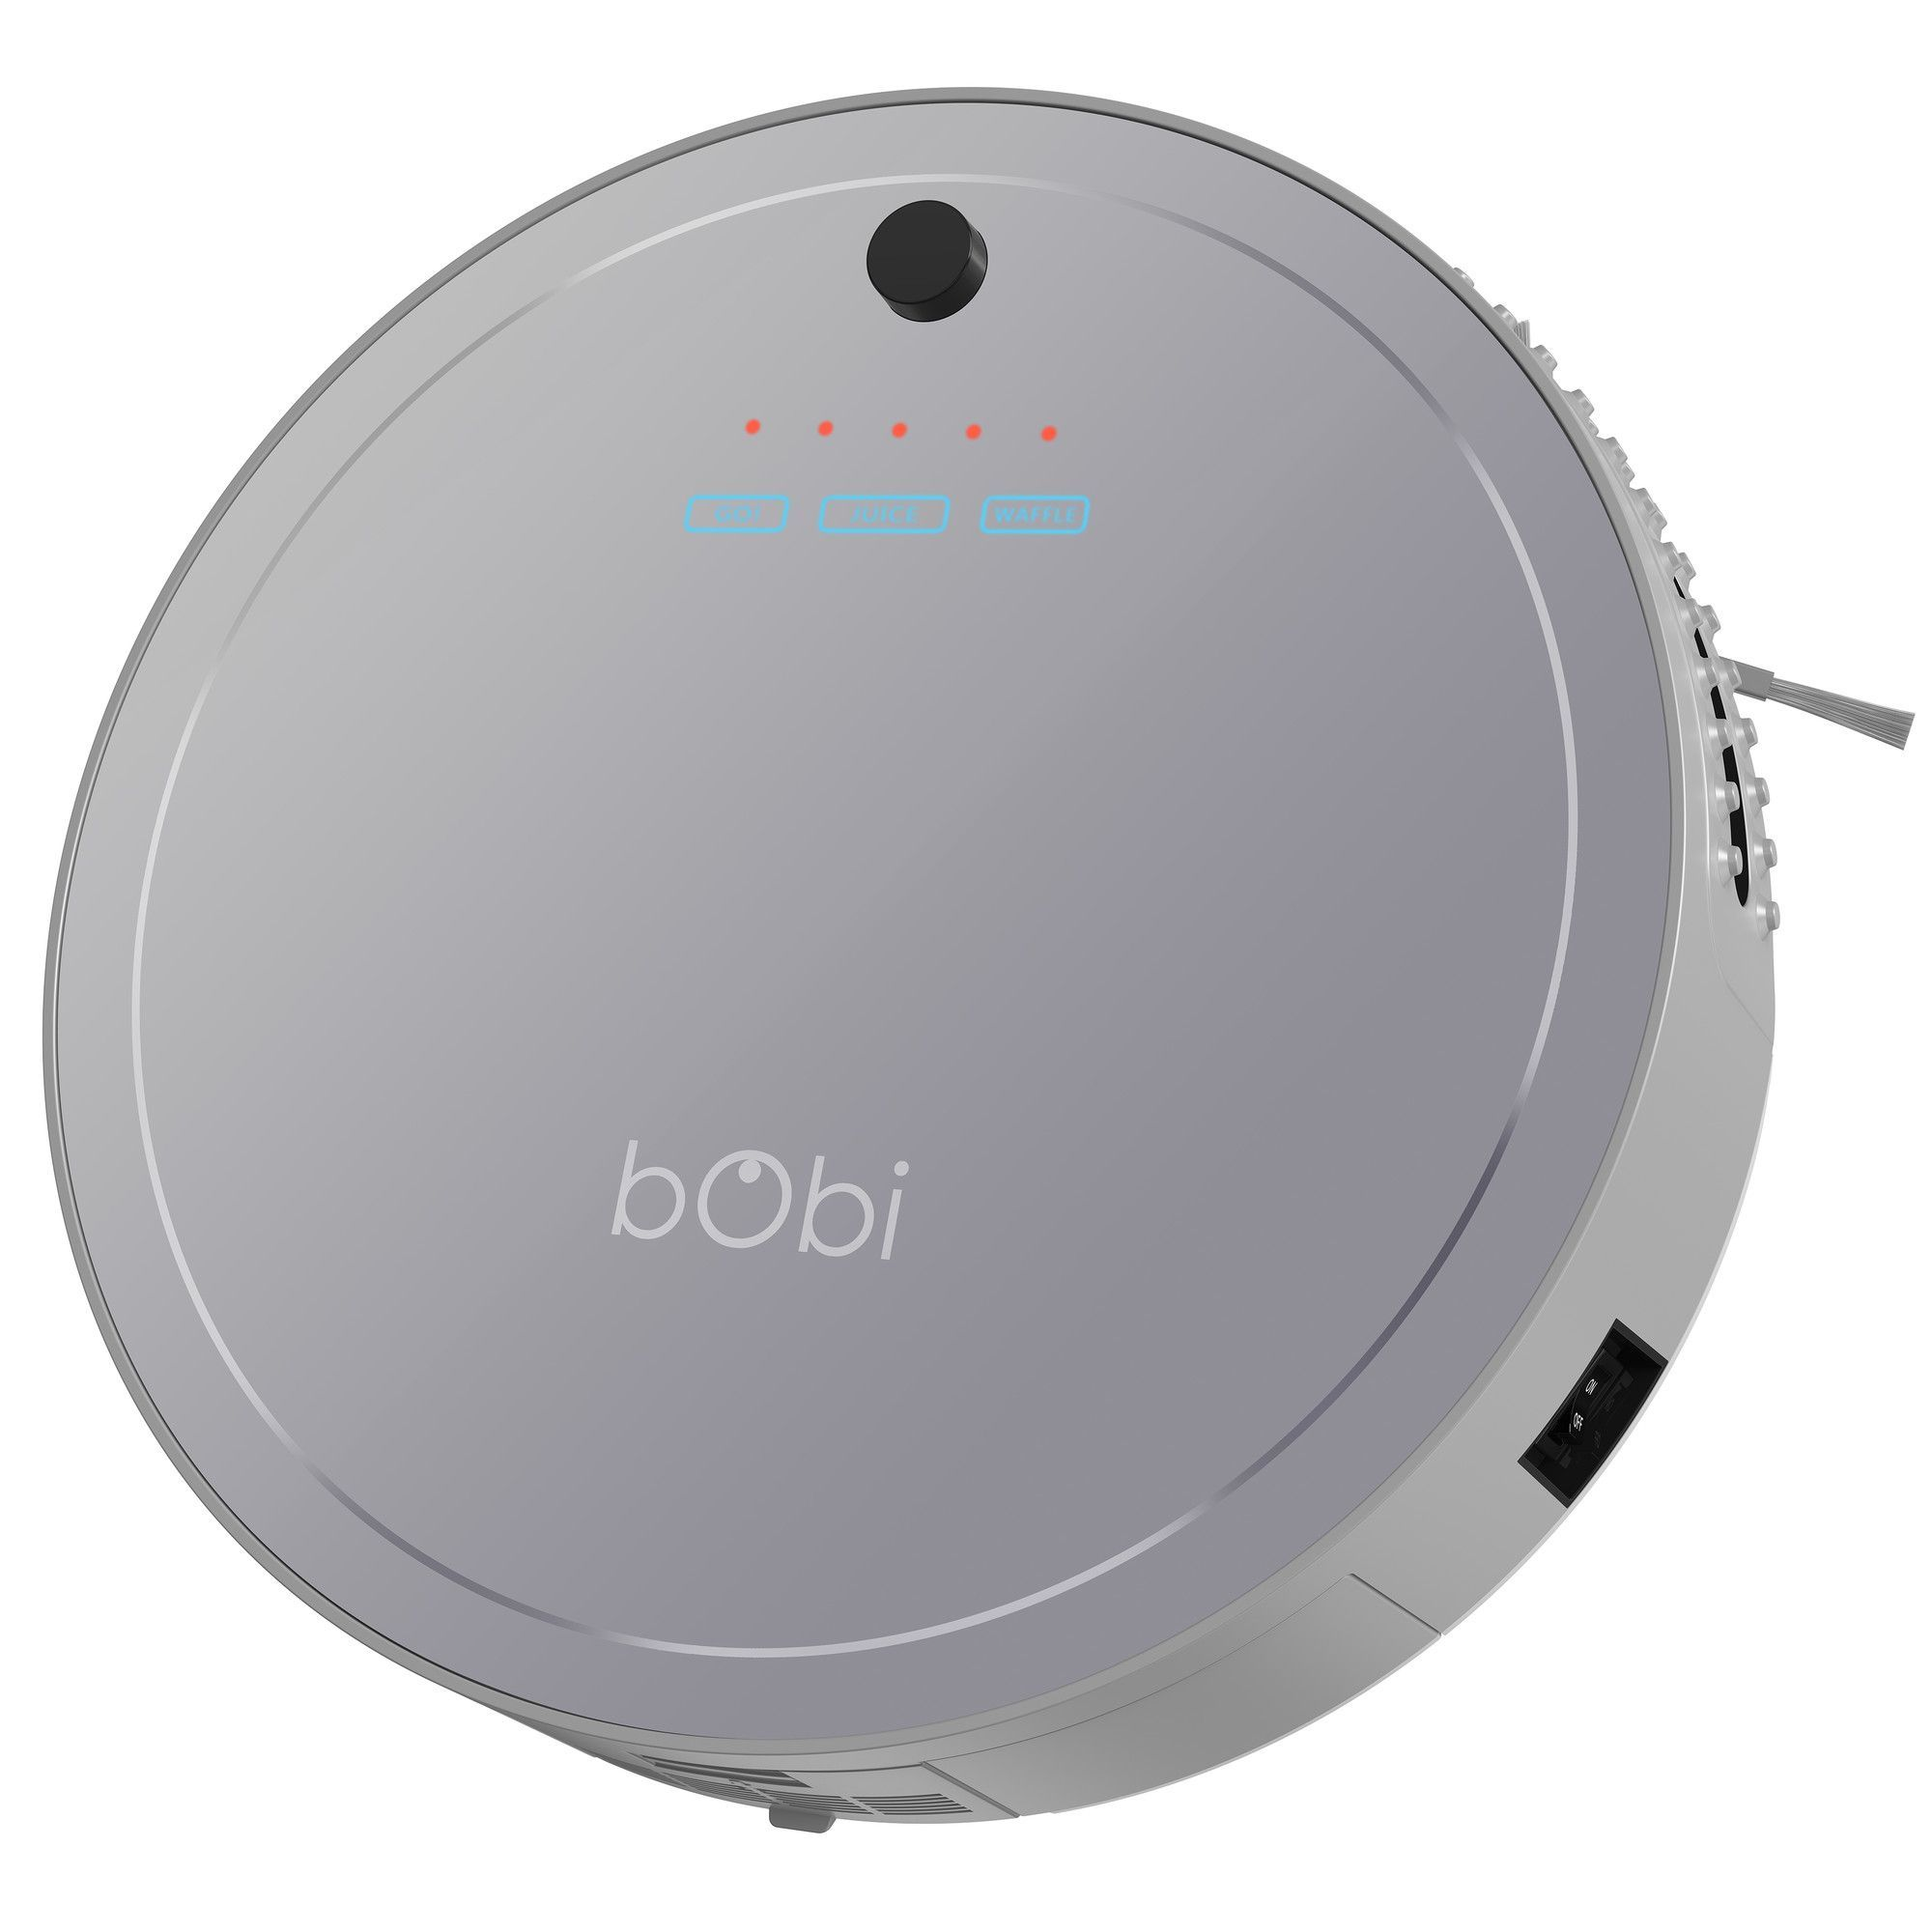 bObi Pet by bObsweep Robotic Vacuum Cleaner | Vacuums